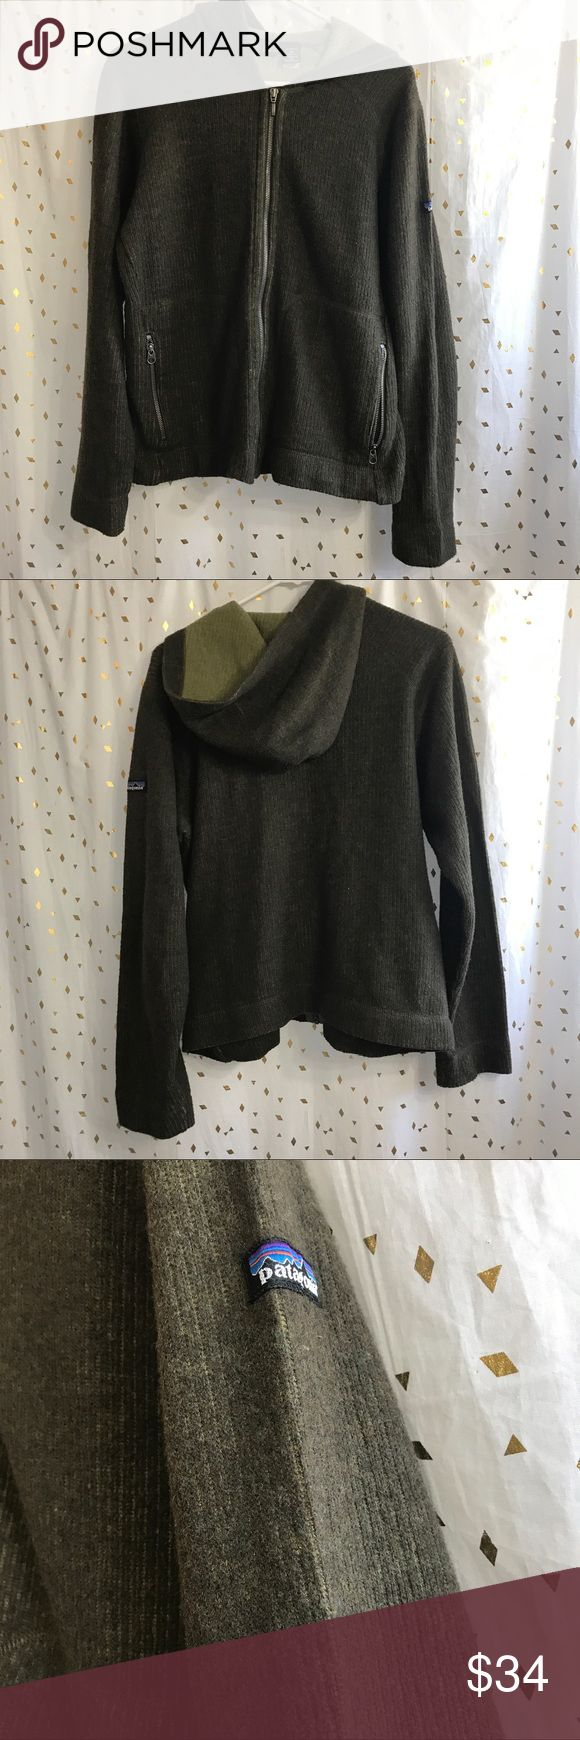 Patagonia zip up jacket hoodie Army green zip up, super comfy! Excellent condition, lightly worn no rips, tears, holes, stains or piling! Patagonia Tops Sweatshirts & Hoodies